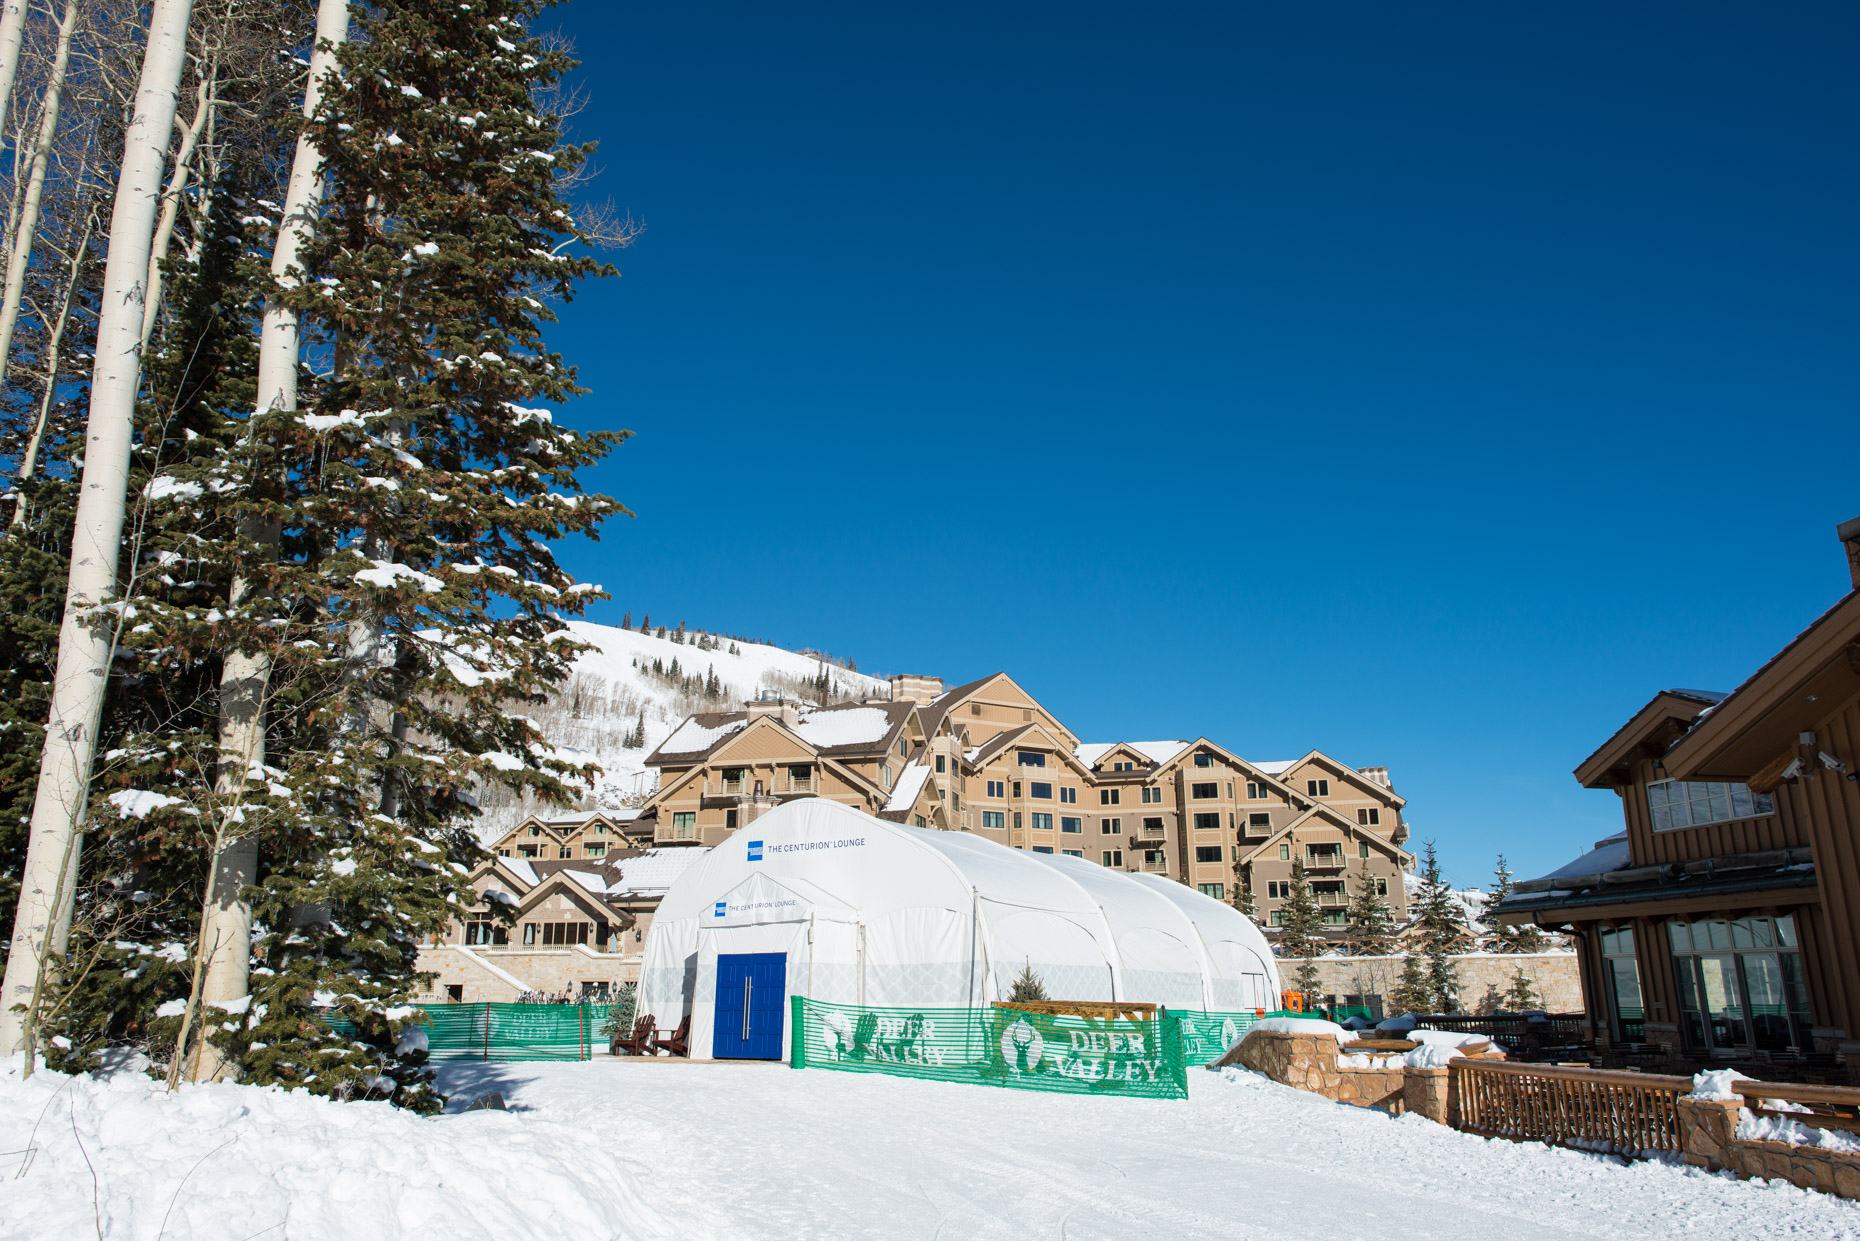 2015-03-06-AMEX-Deer-Valley-0141